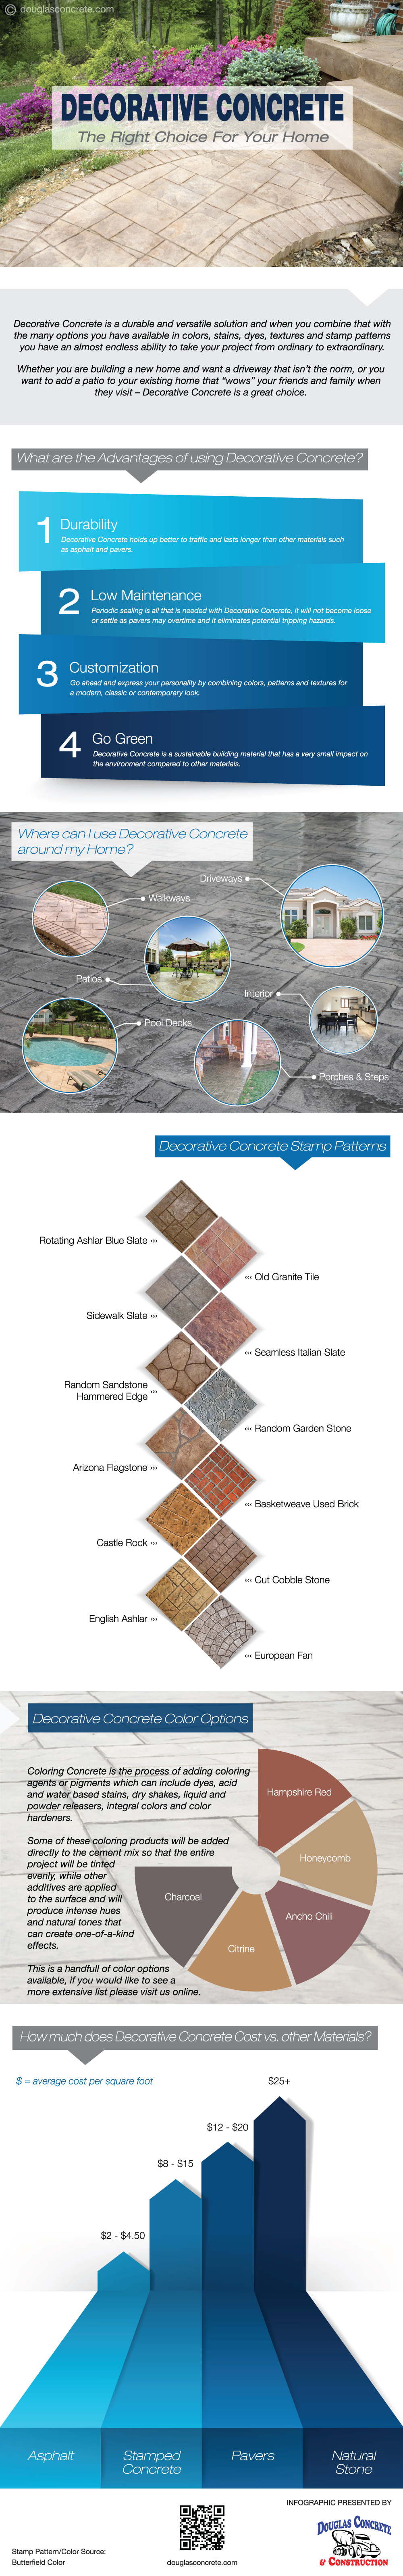 Decorative Concrete - The Right Choice For Your Home Infographic